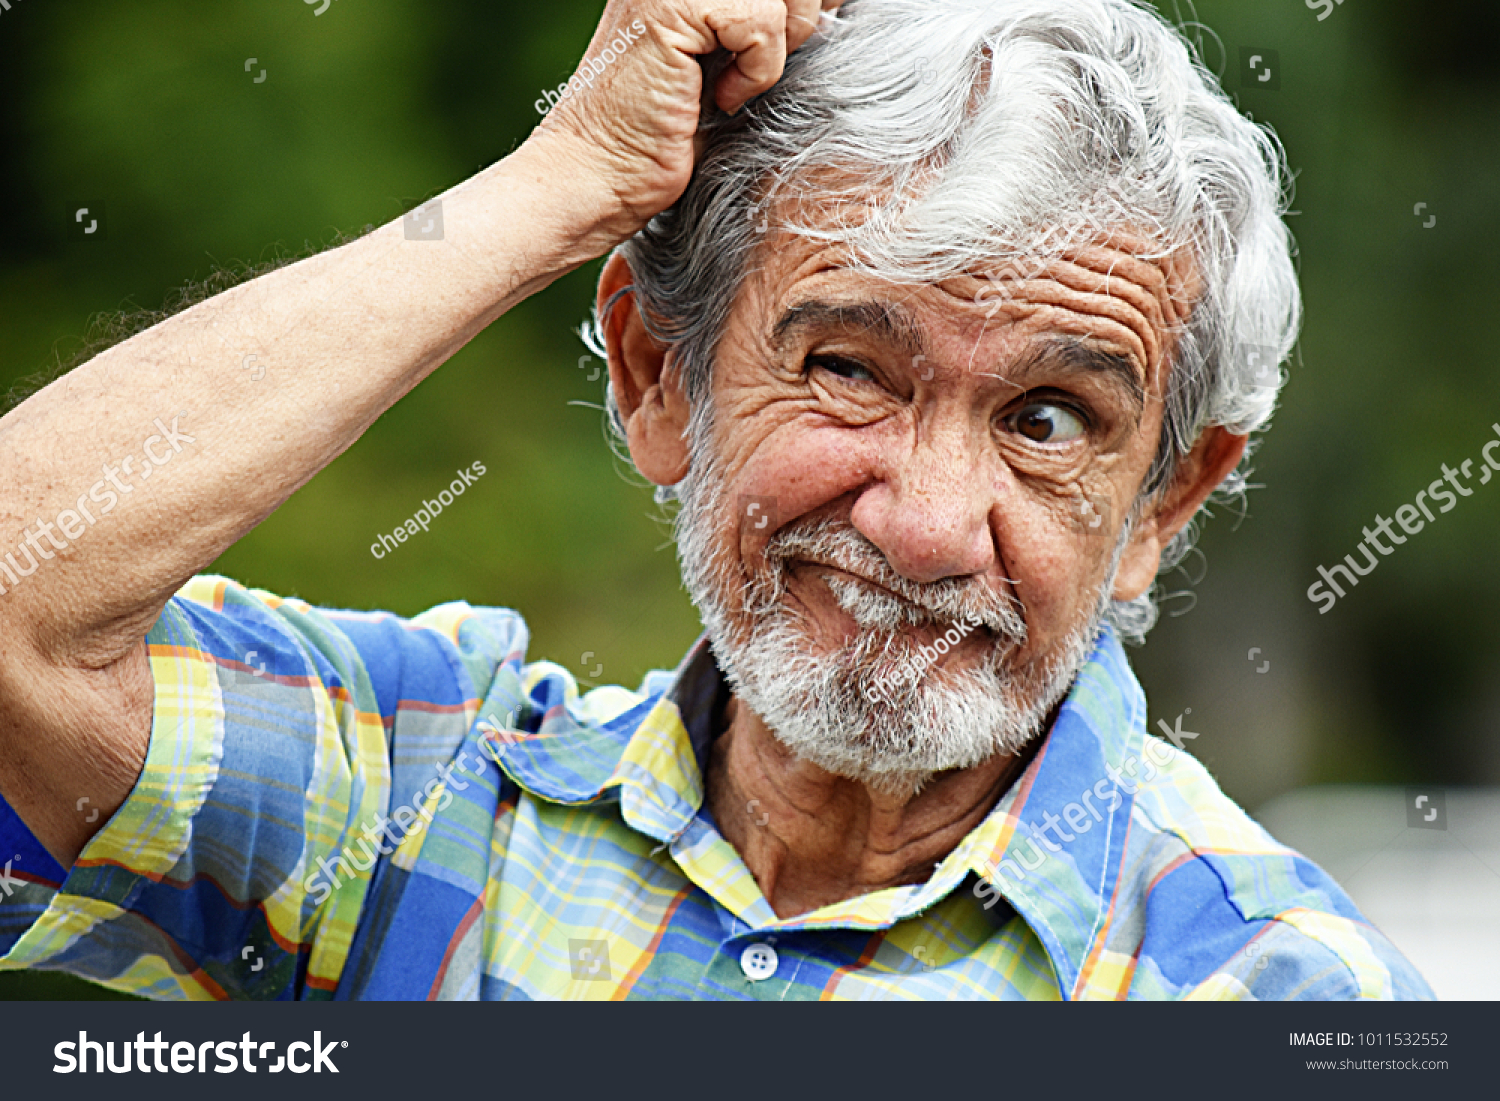 confused old person stock photo edit now 1011532552 shutterstock